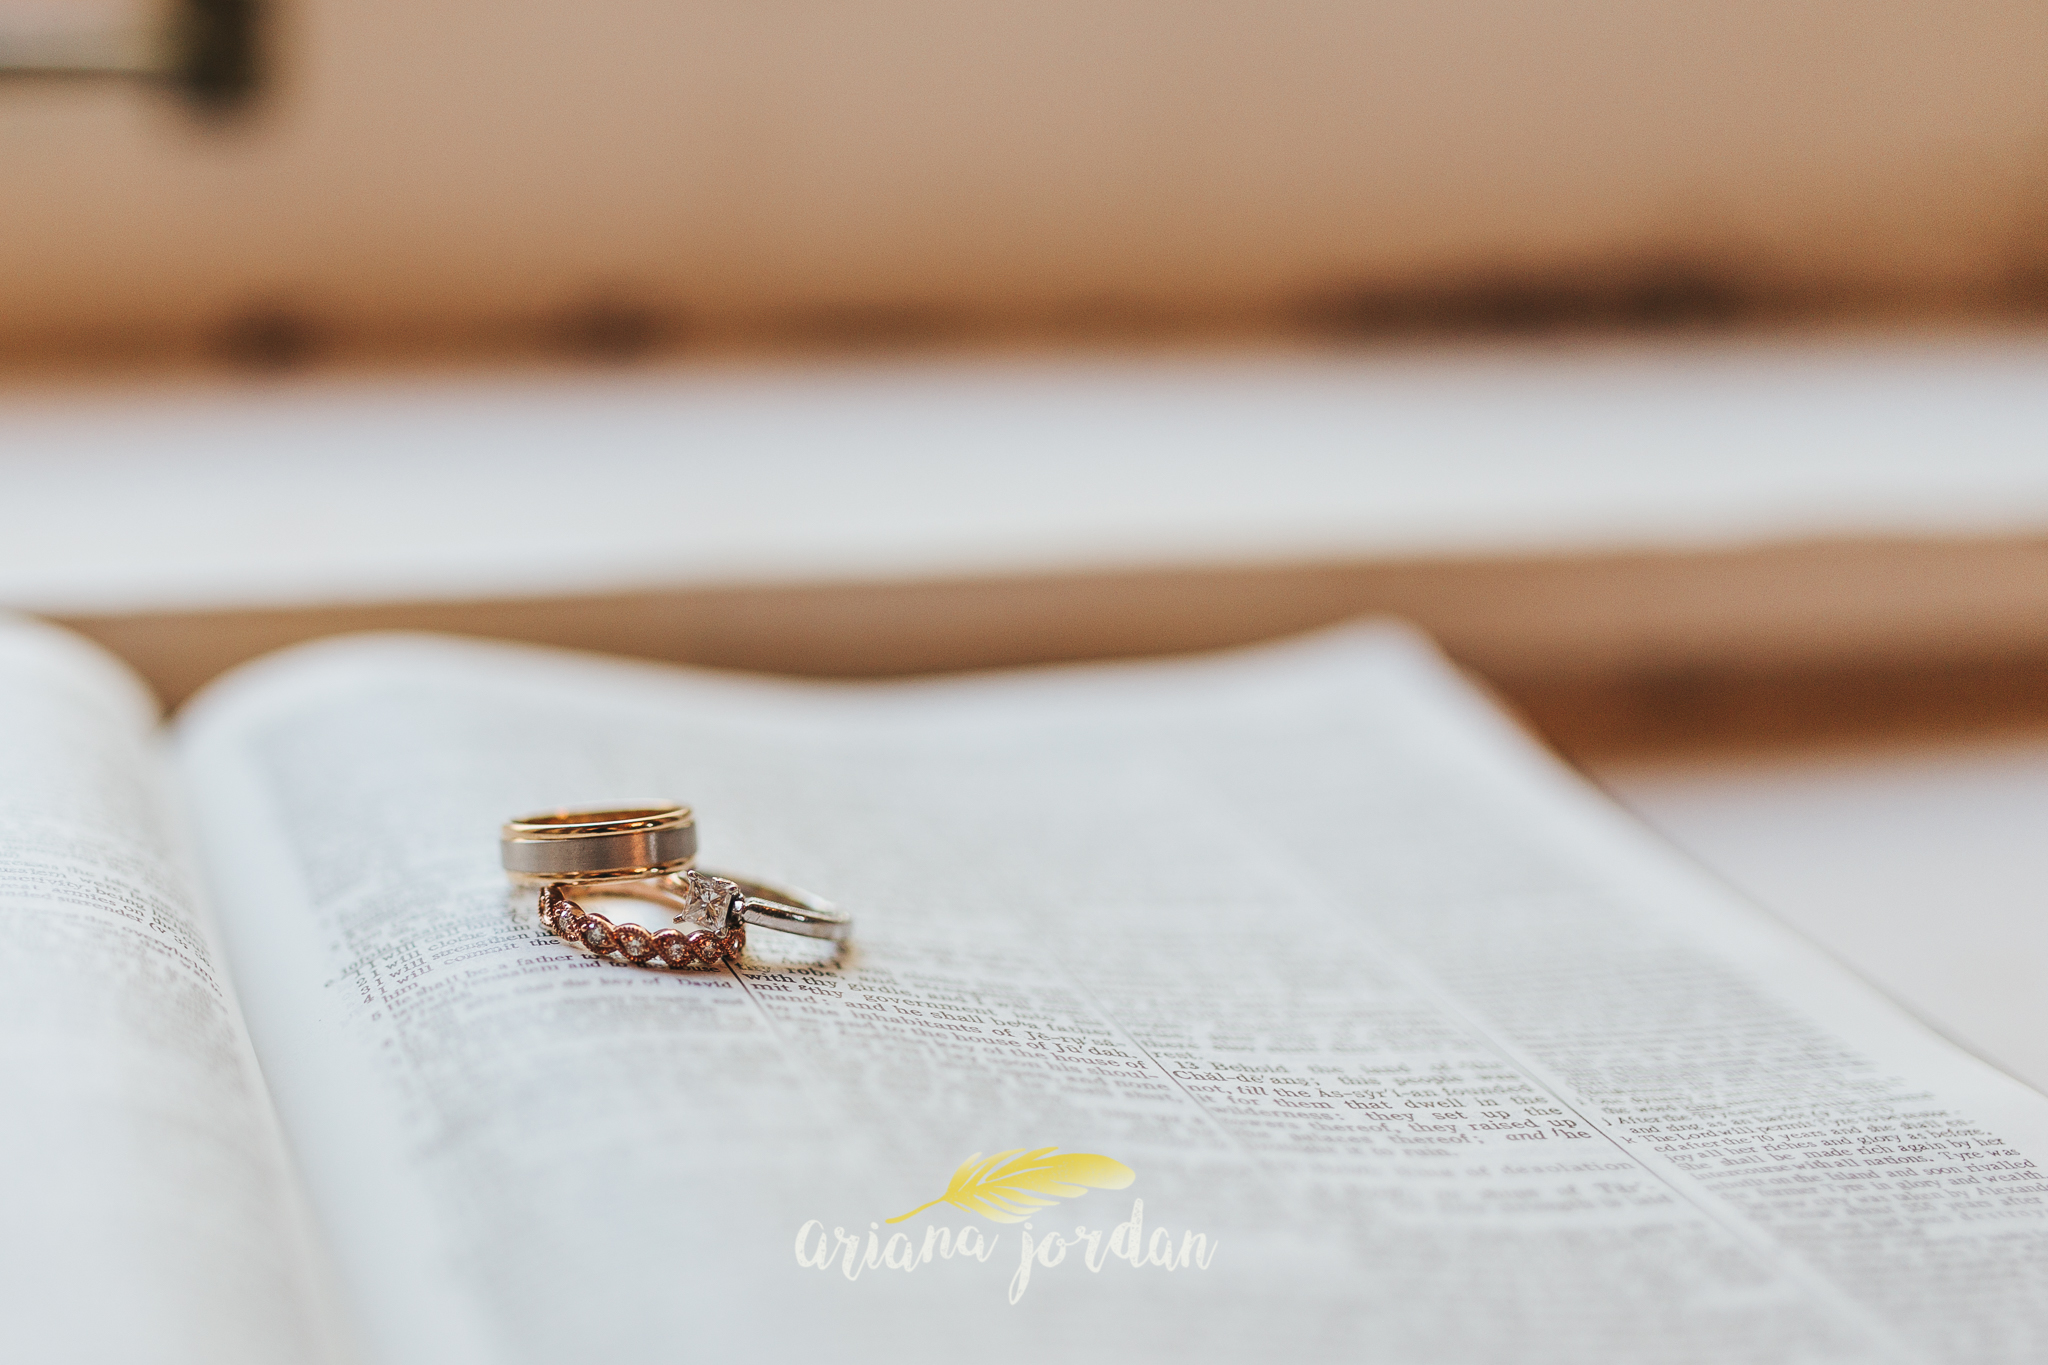 010 Ariana Jordan Photography - Ashley Inn Wedding Photographer 9275.jpg